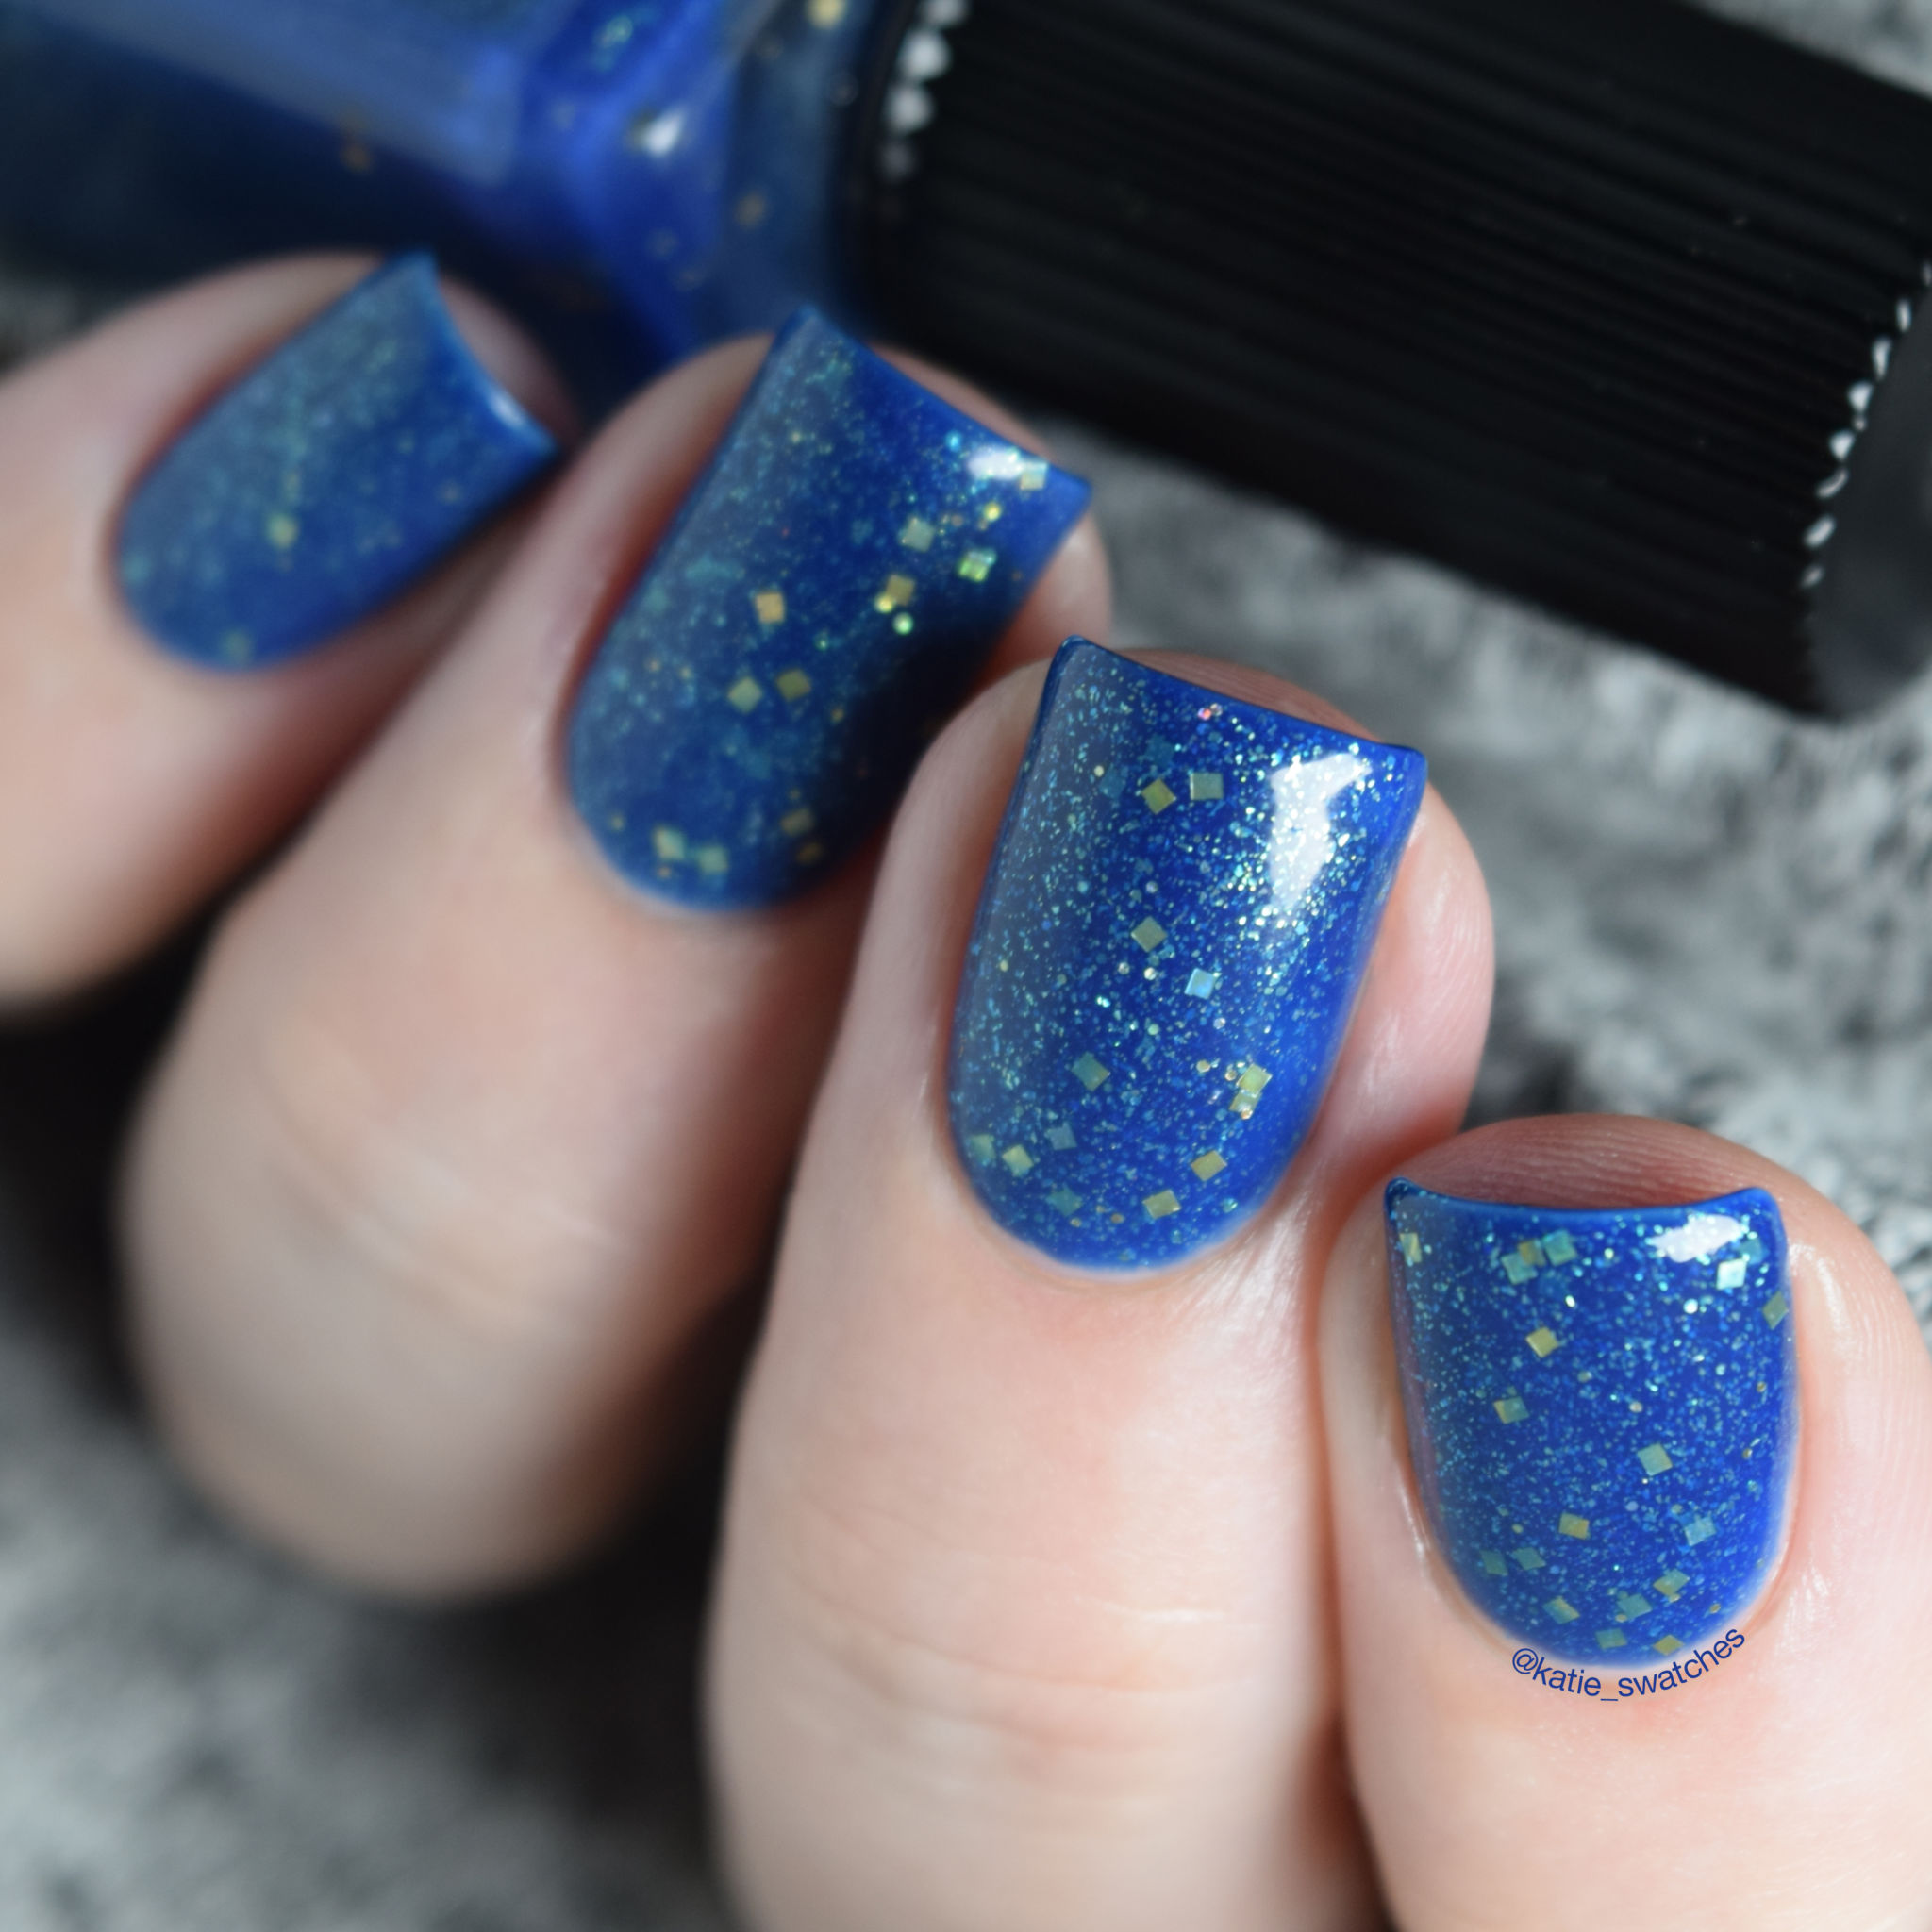 Cadillacquer Night Clouds indie nail polish swatch - blue green glitter